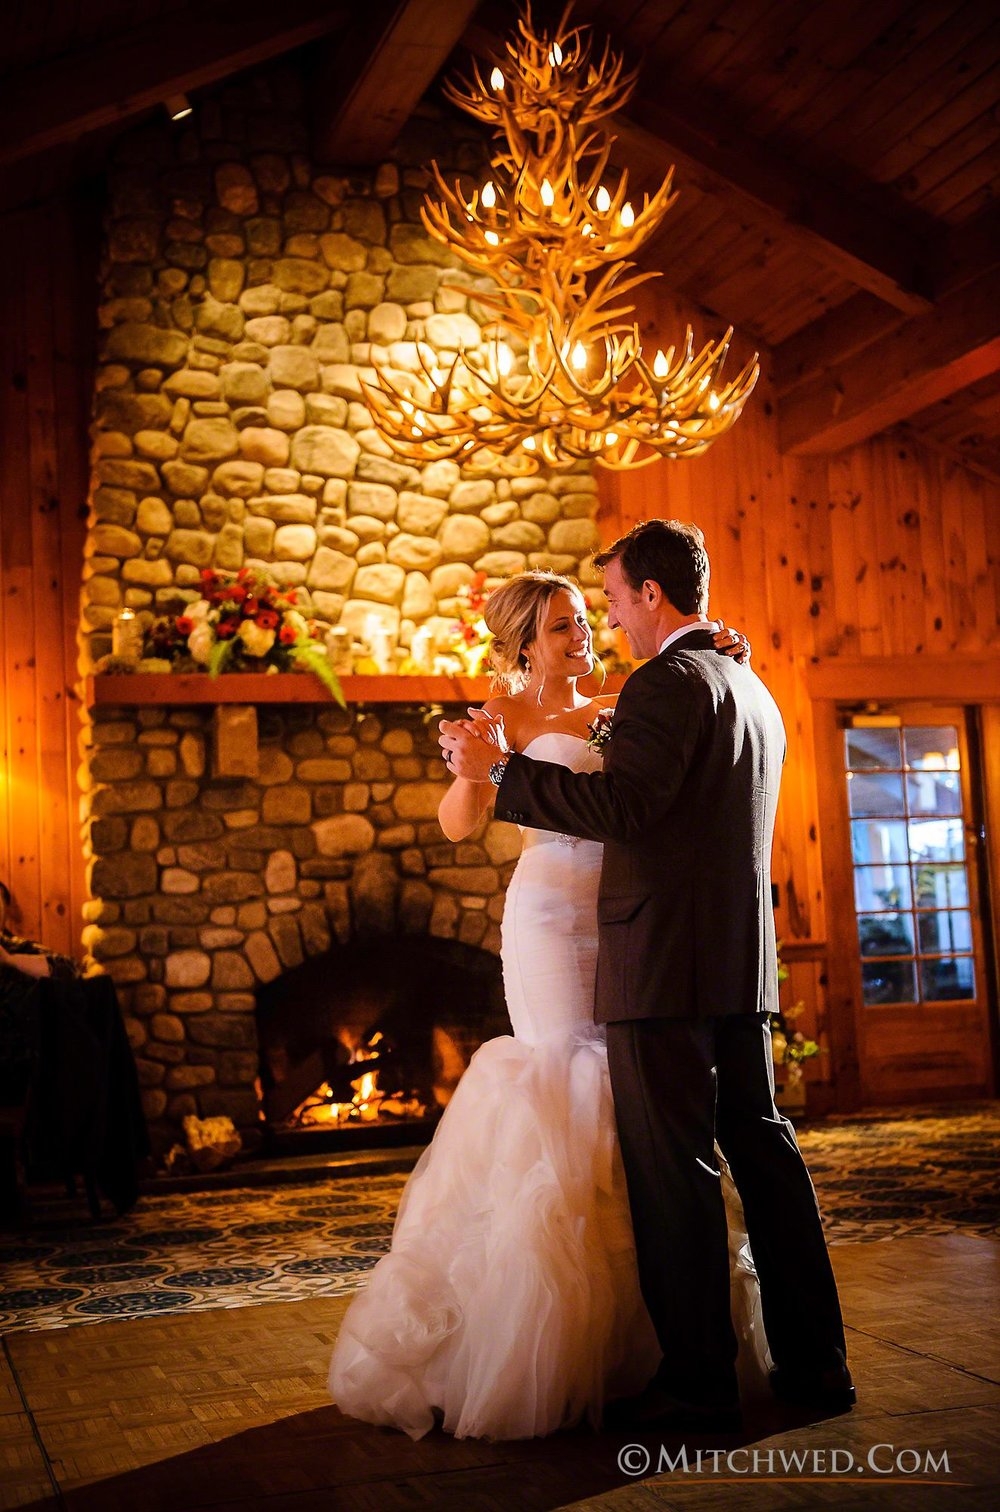 What really made an impression on us was the authentic interest that Shannon had in making our wedding day perfect for us. - - Meghan and Travis